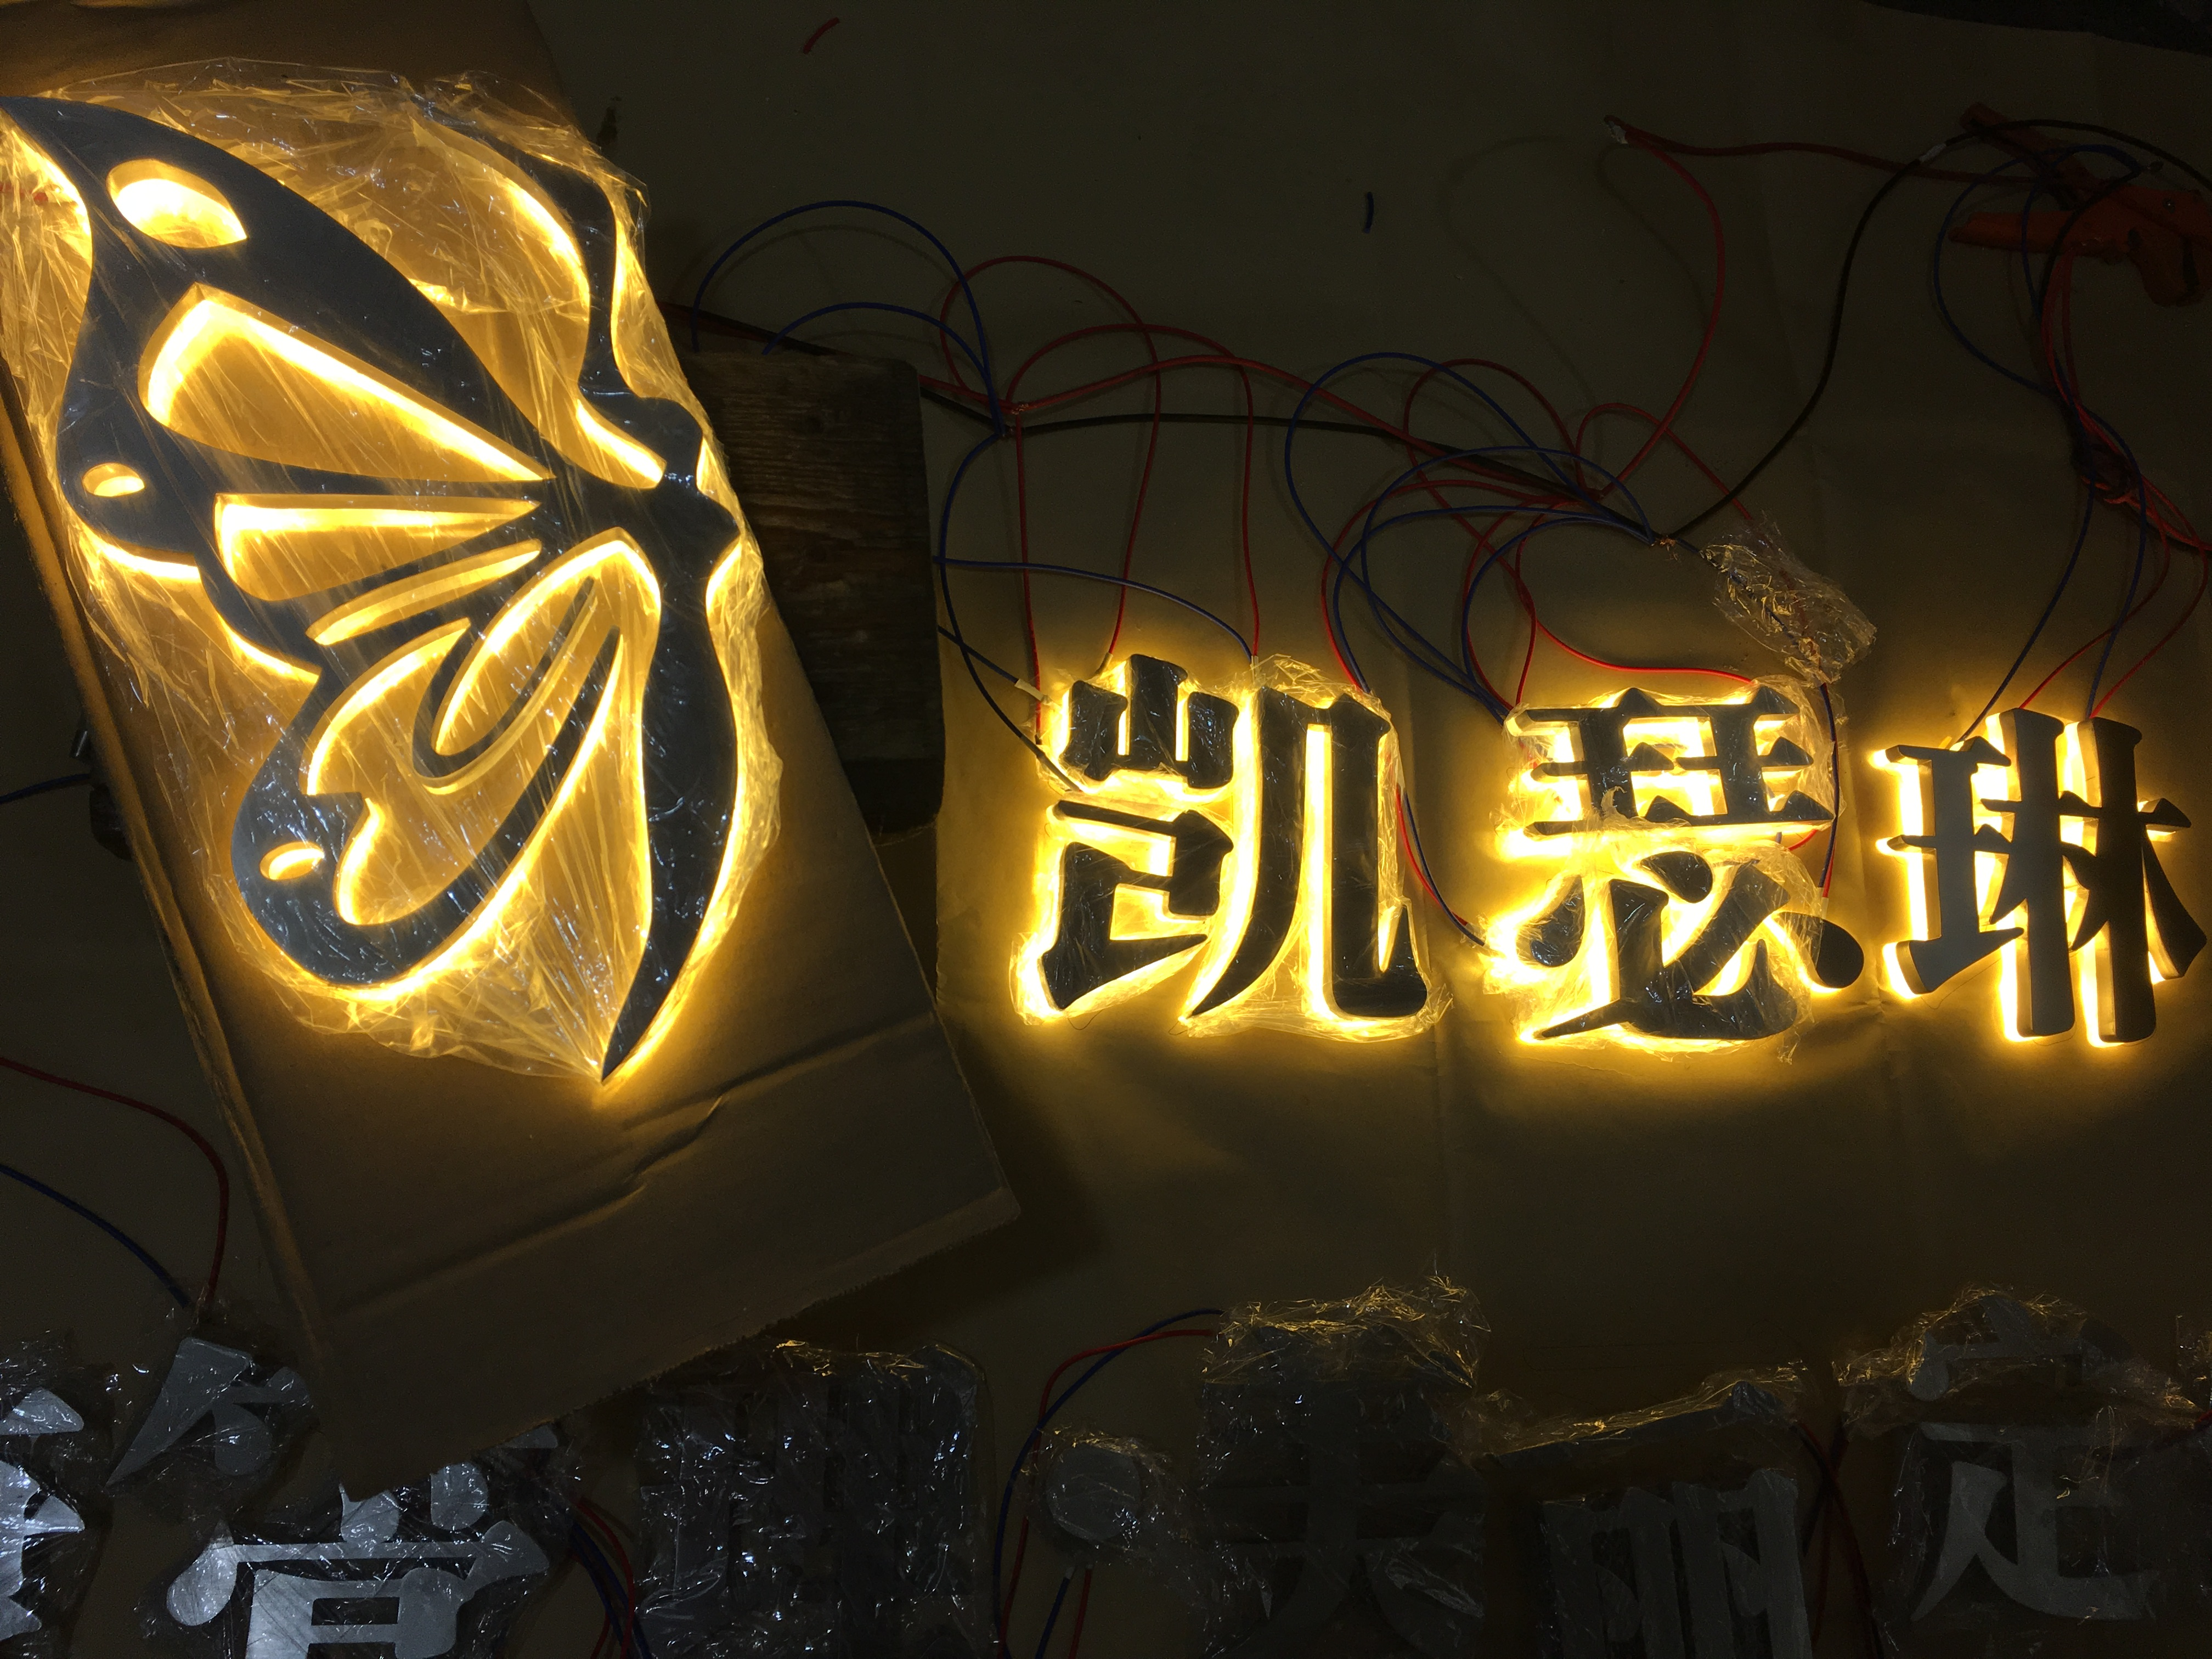 Custom Seiko stainless steel back light mirror drawing fine words bright surface fabrication and installation of commercial sign